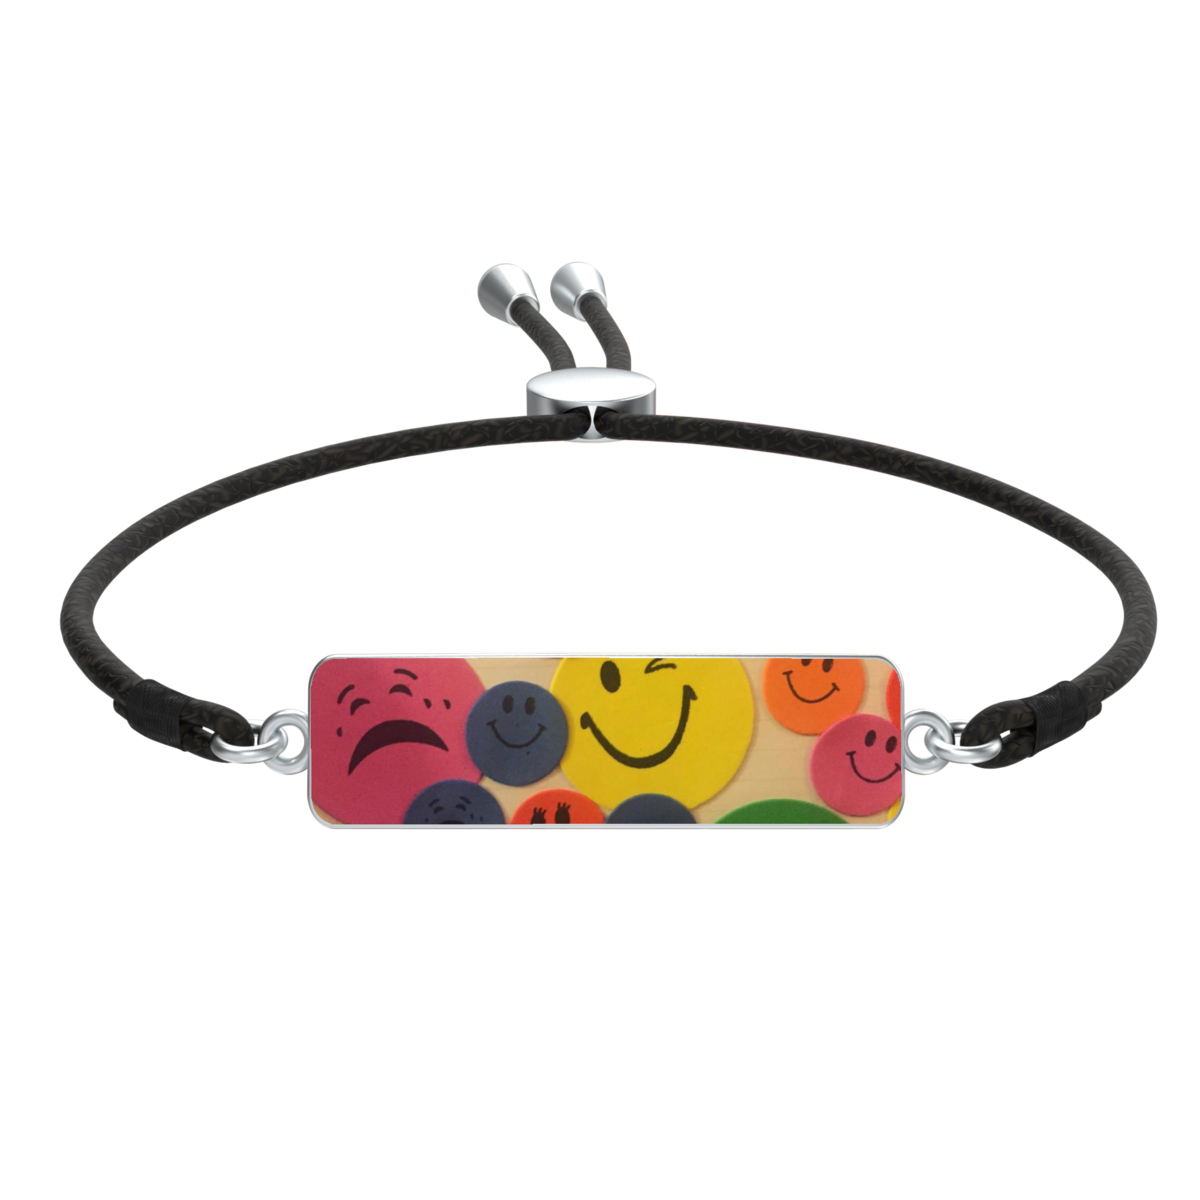 Kaya's Emojis Jaylon with Liv Cord in silver - product image